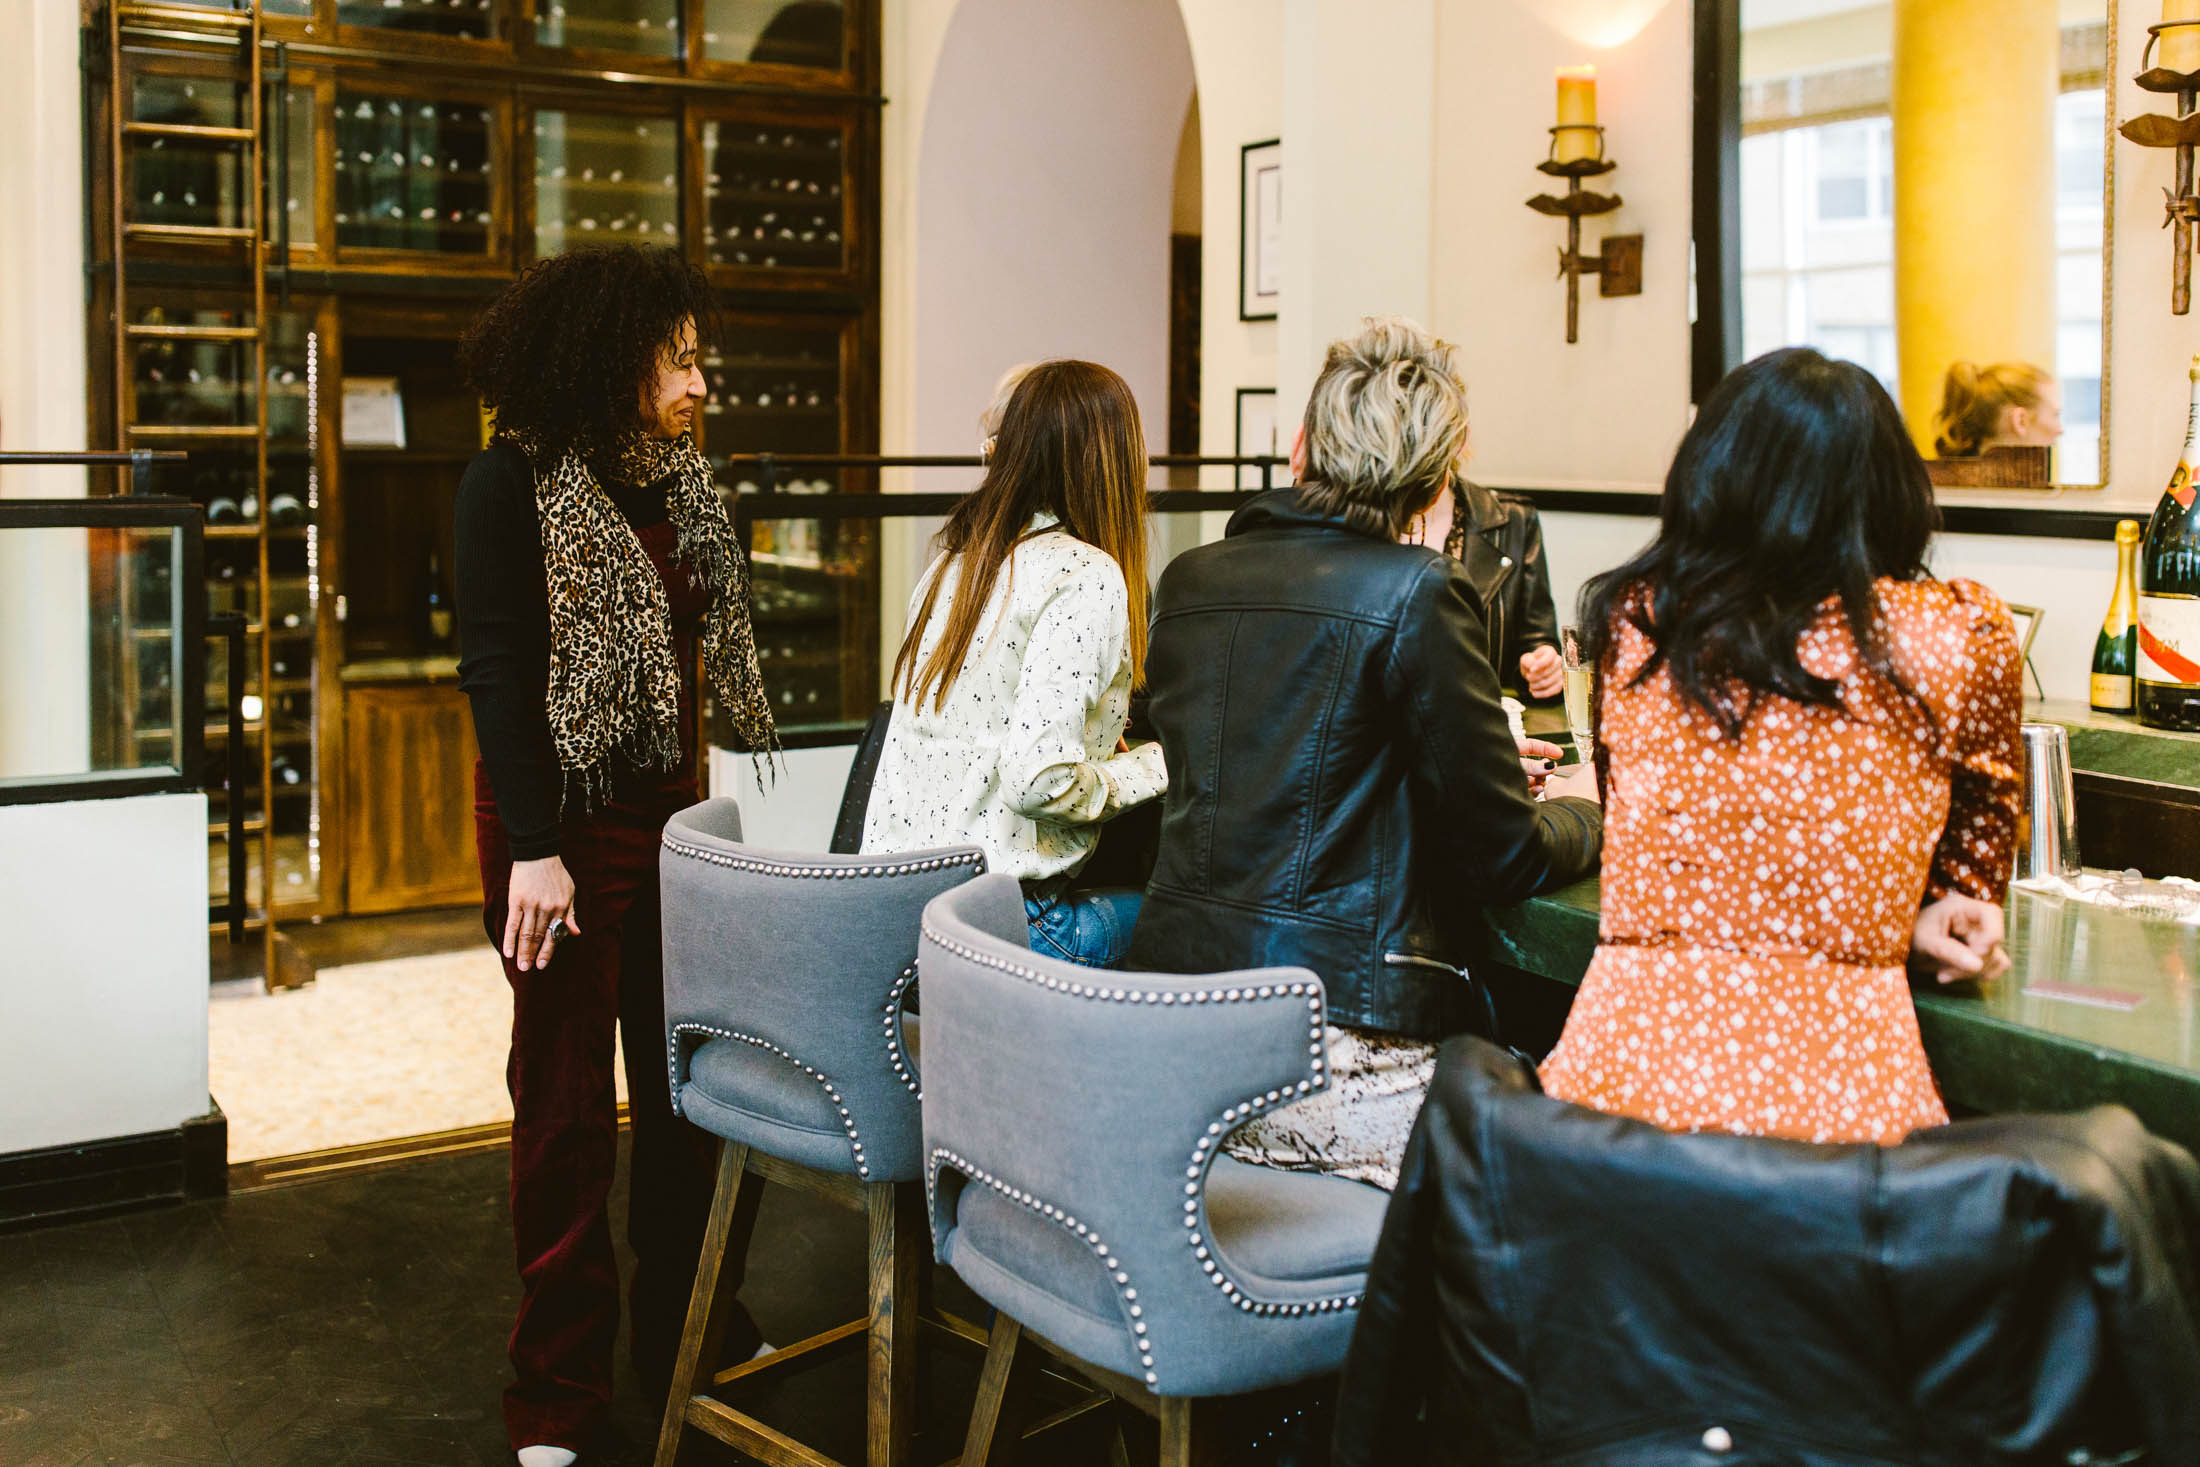 The Rittenhouse Hotel was the perfect place for the team to stay in Philadelphia for our togetherness visit. The bar at Lacroix + the rooms = just right.